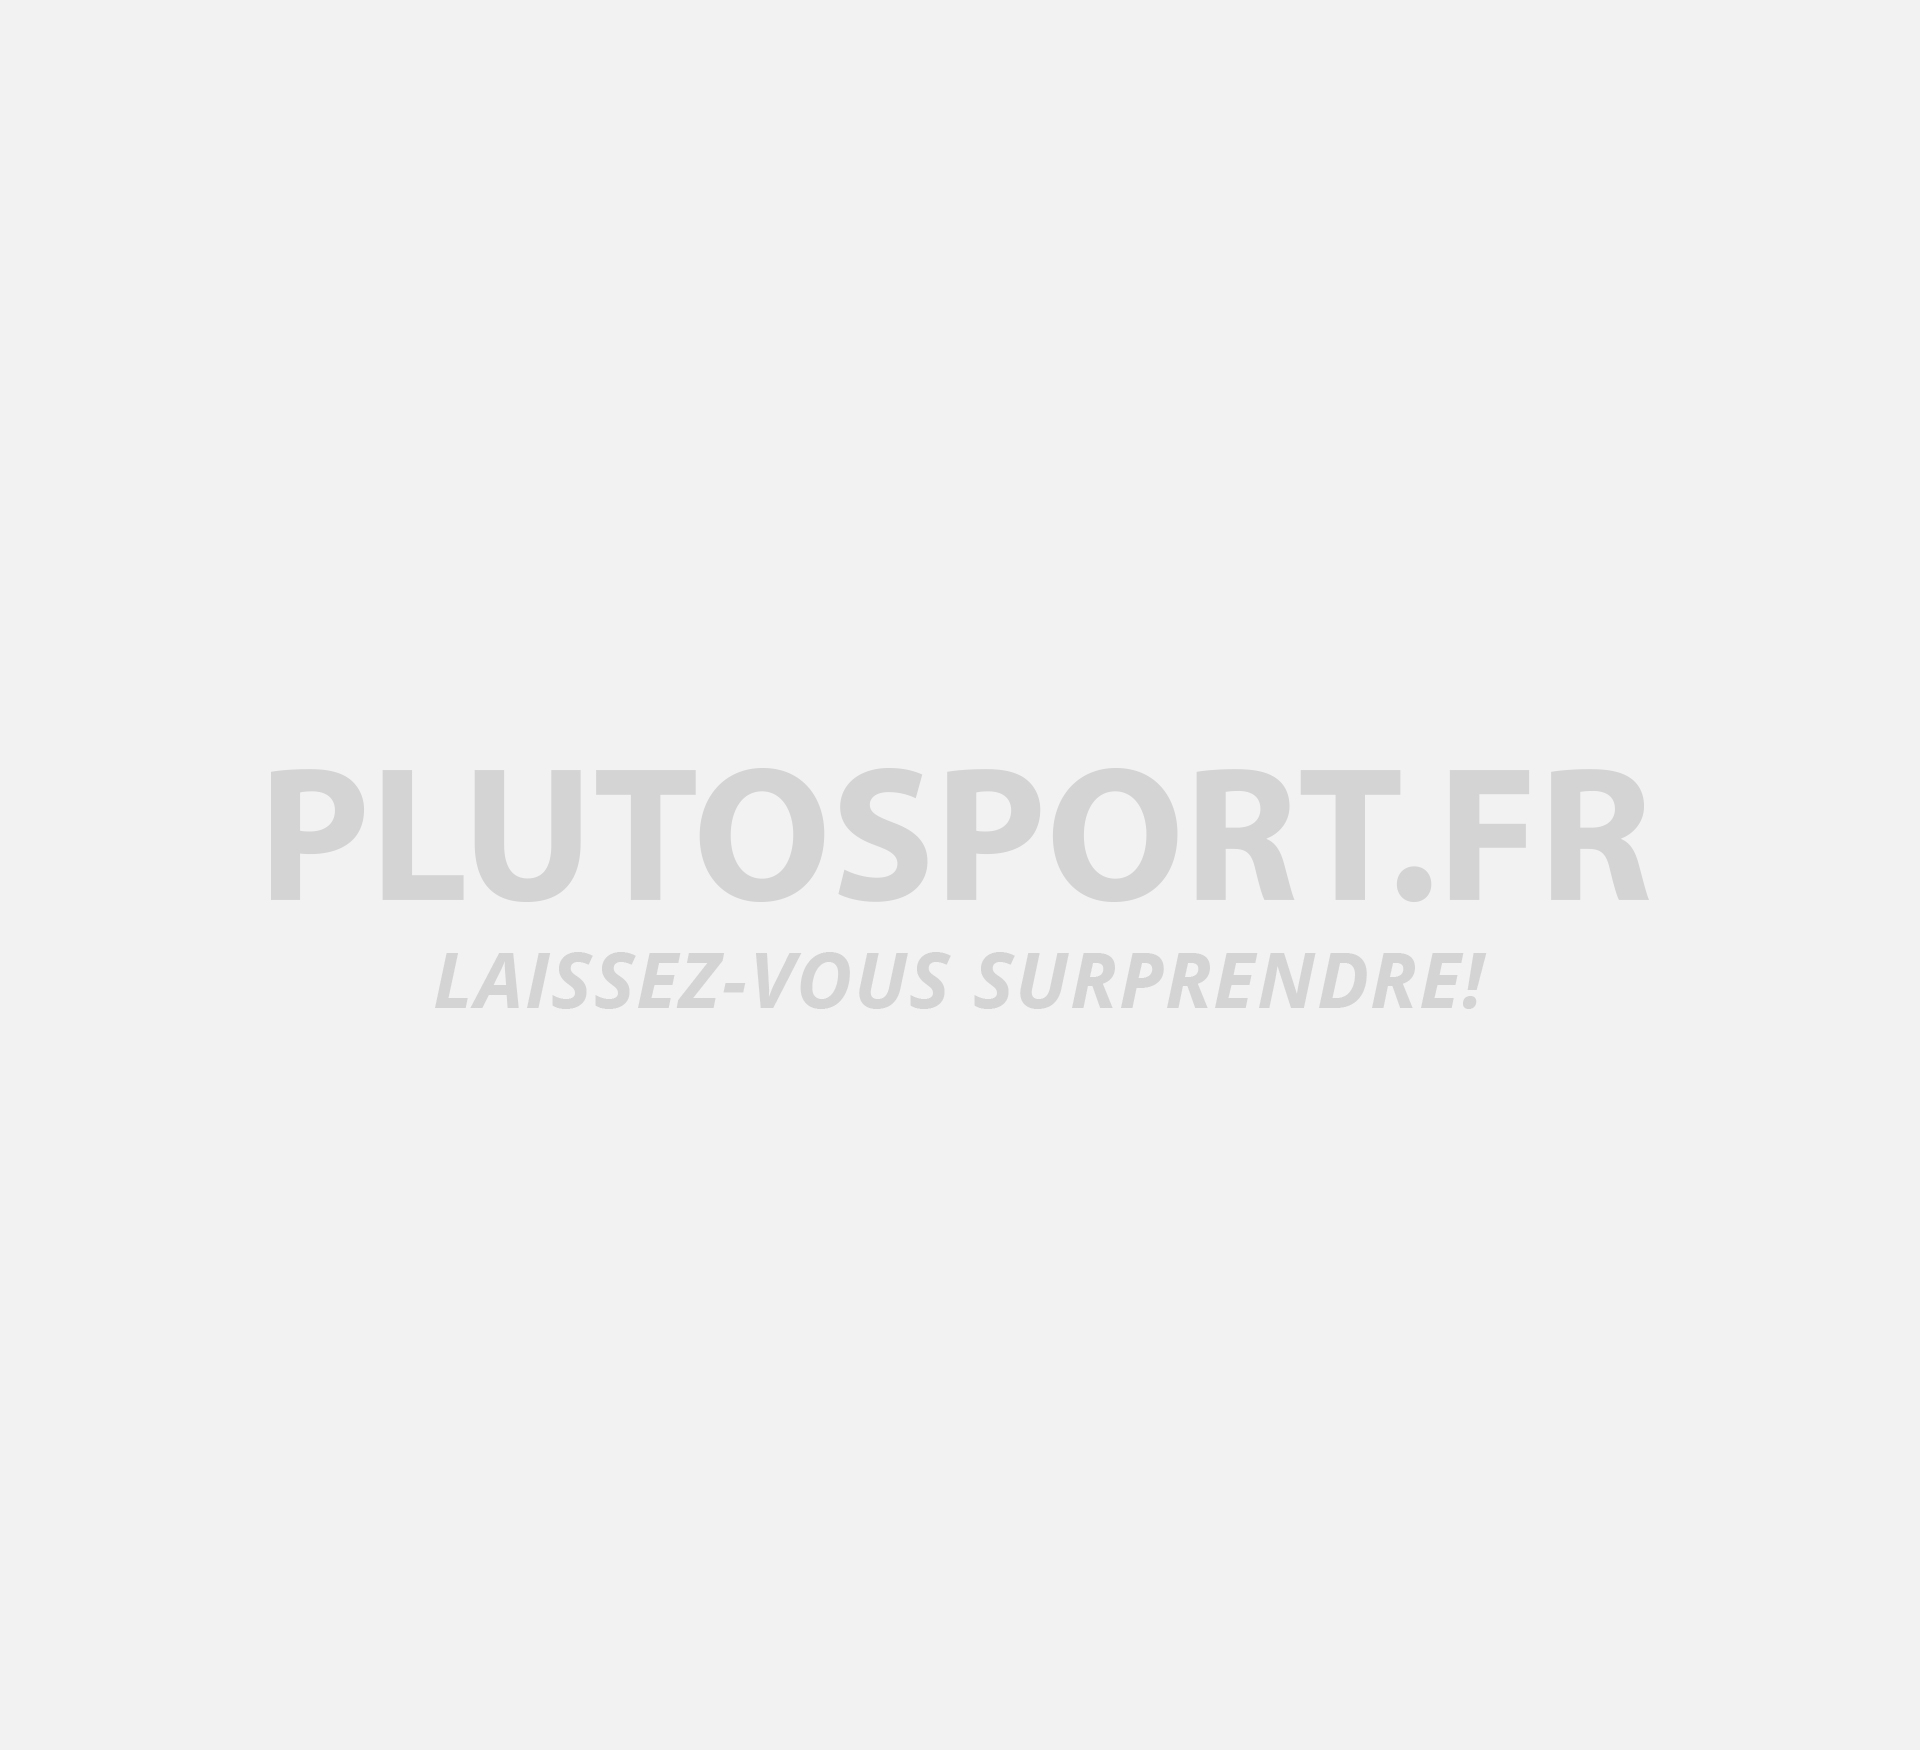 Le pantalon de jogging Sjeng Sports Men Pantalon Colby pour hommes